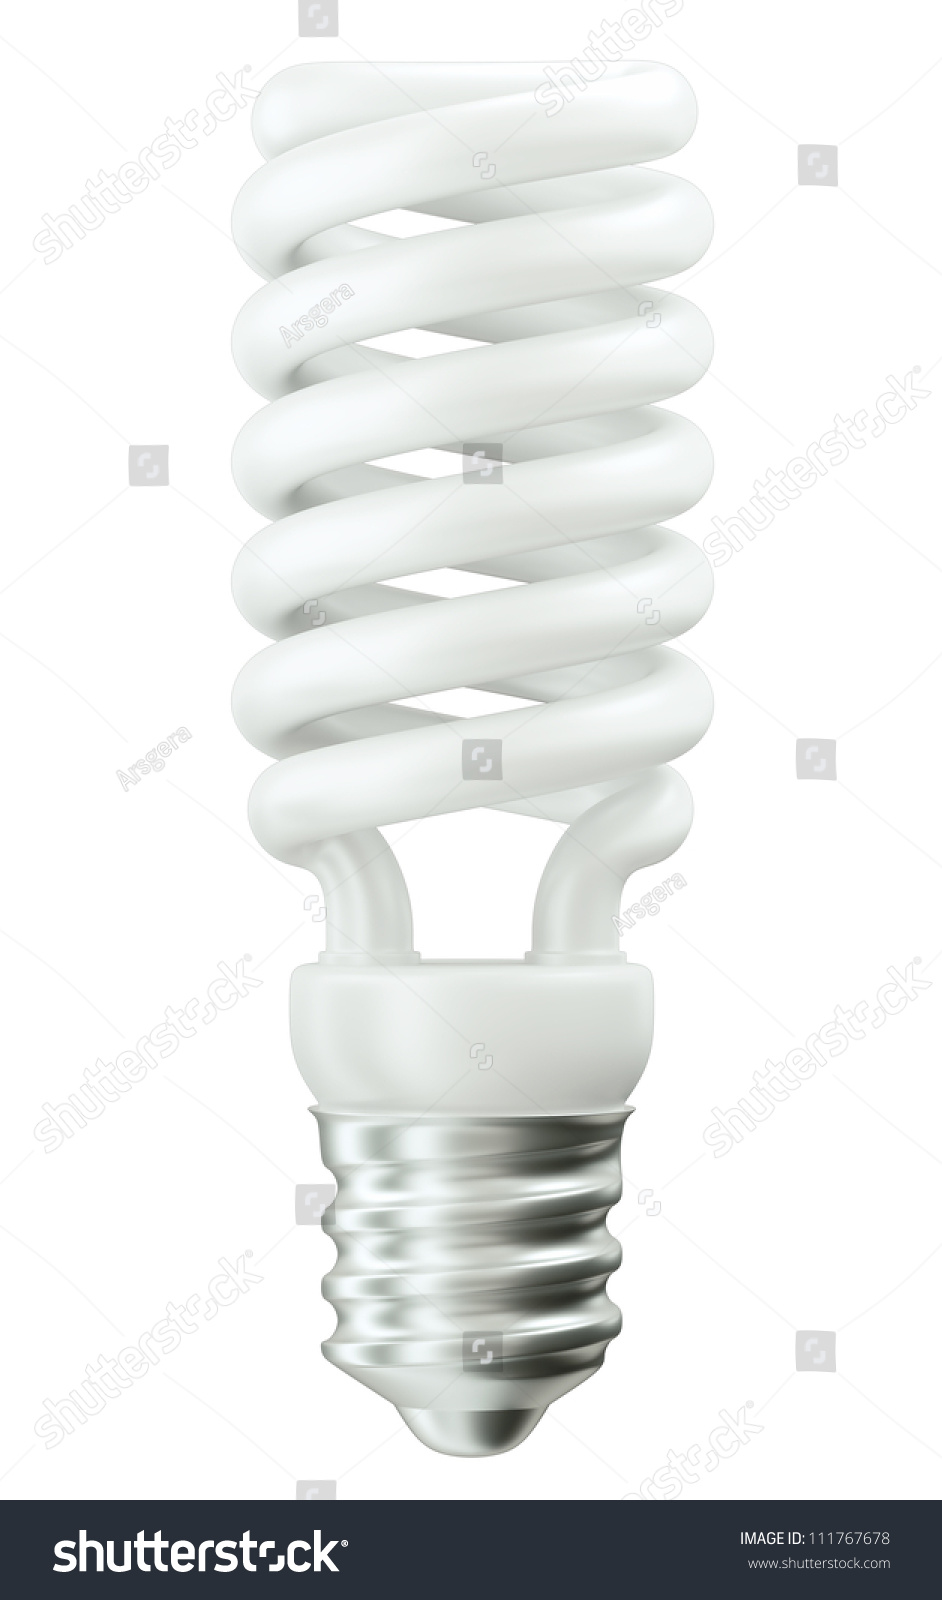 Fluorescent Energy Efficient Light Bulb Isolated Over White Stock Photo 111767678 Shutterstock